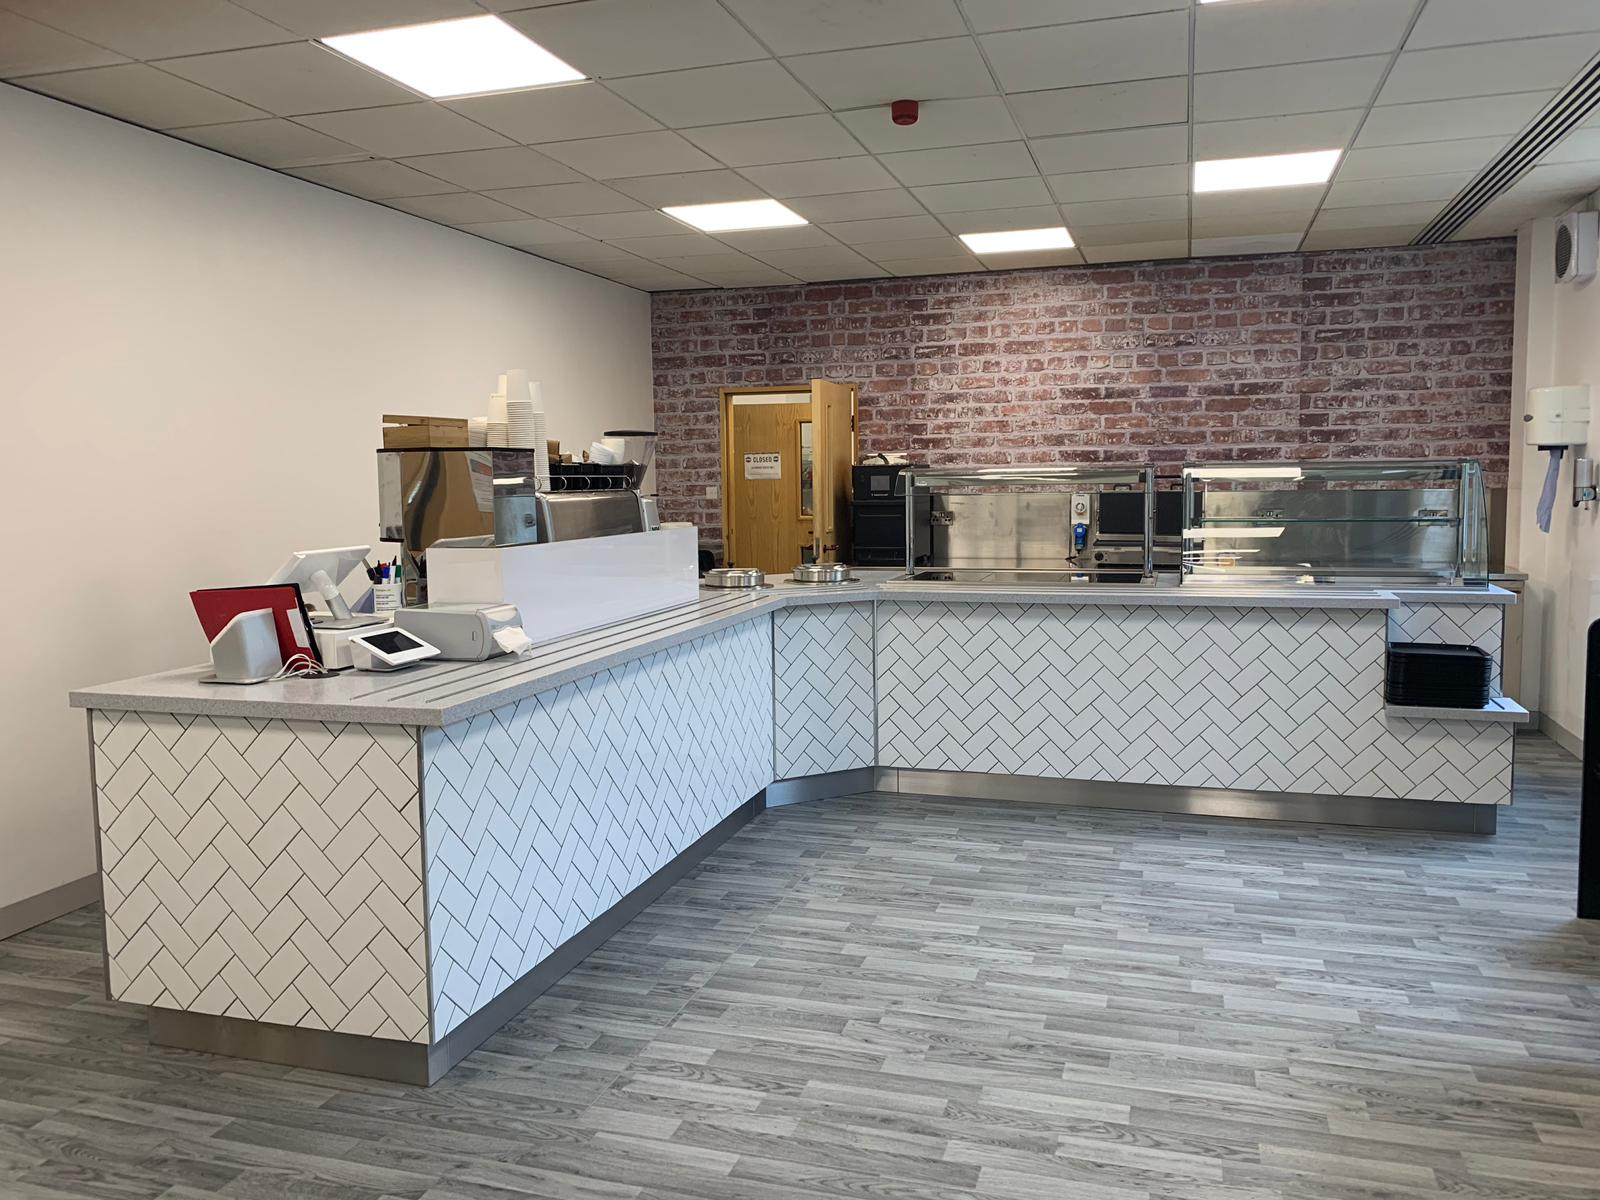 After Photo of the Servery Counter